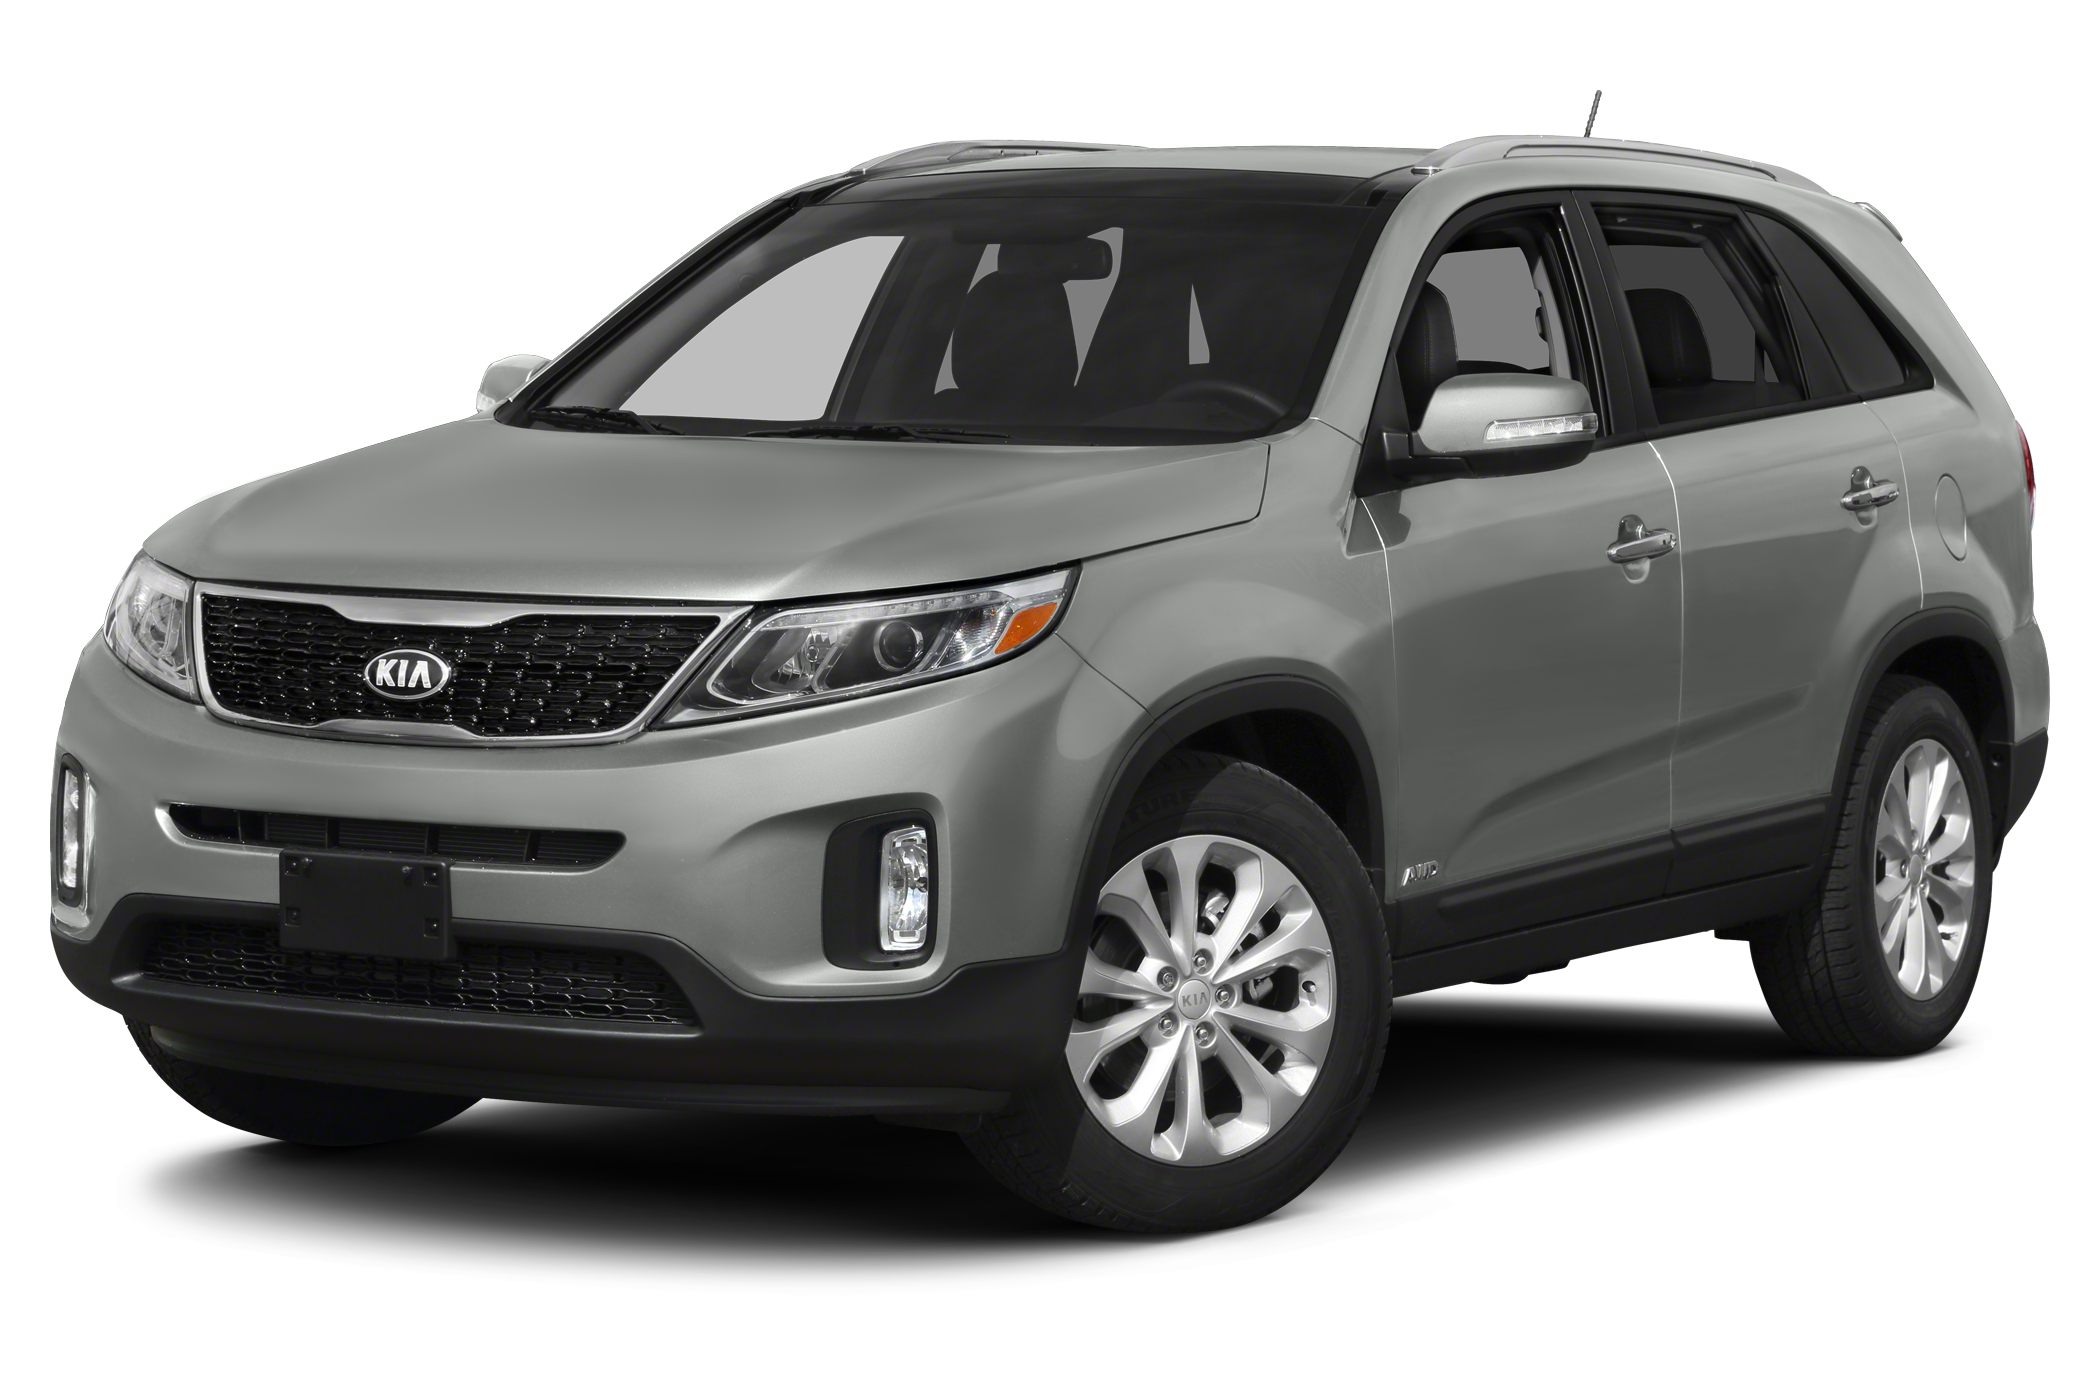 2014 Kia Sorento Limited SUV for sale in Olympia for $38,975 with 12,244 miles